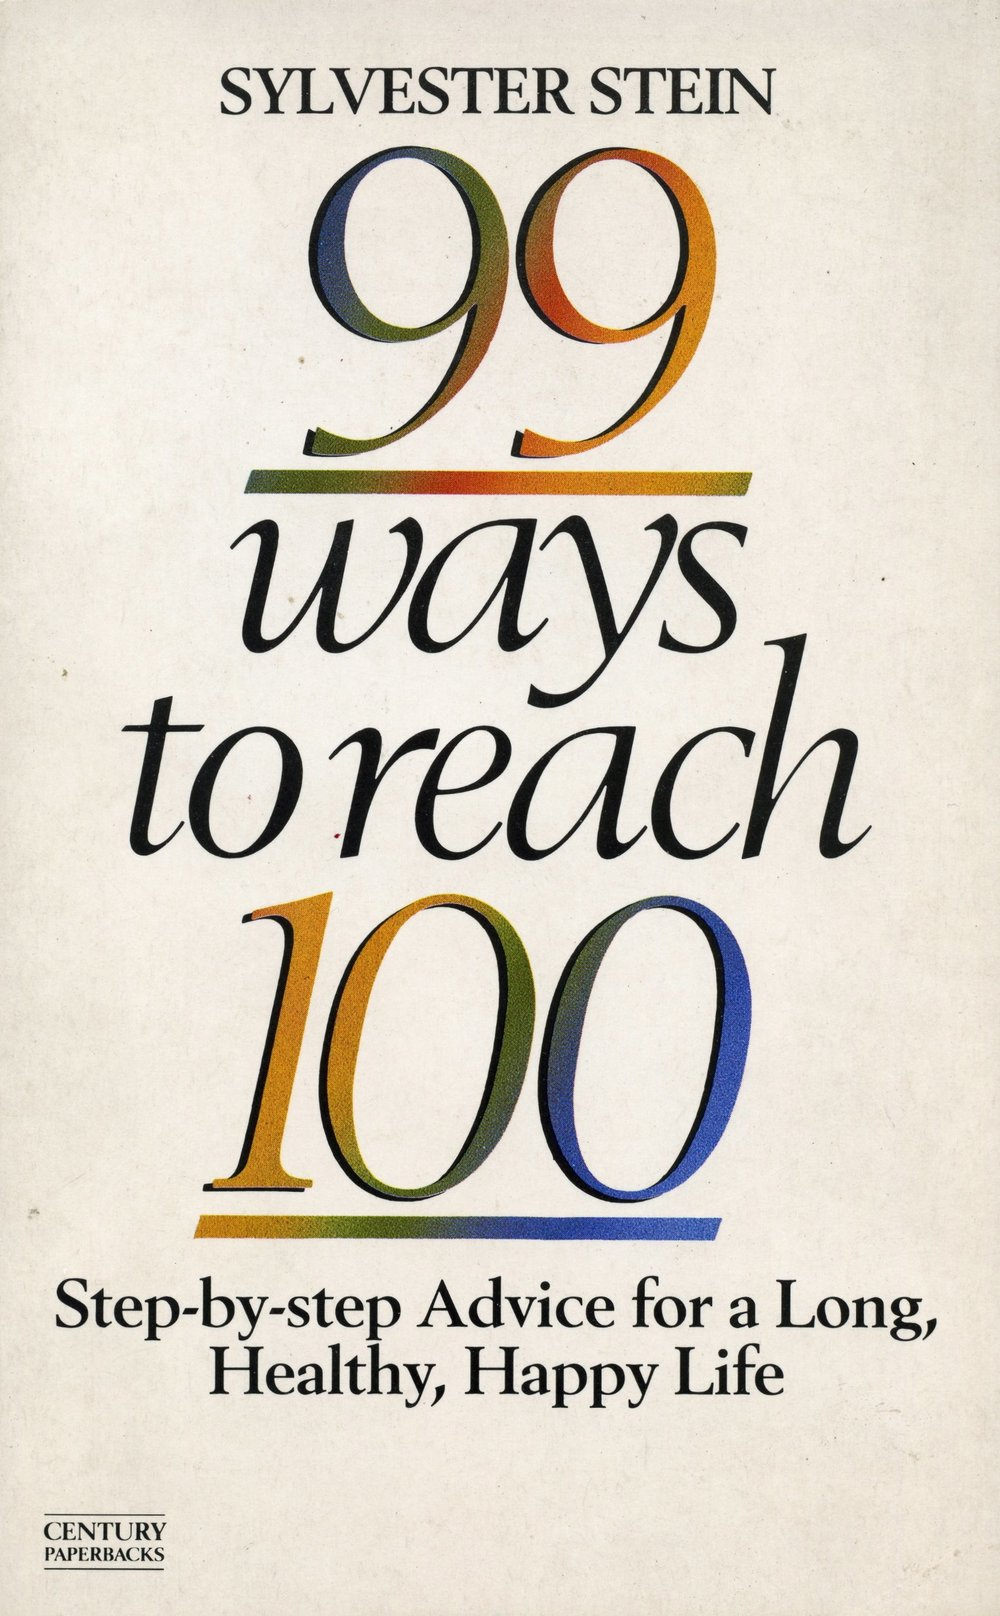 99 Ways to Reach 100 - Sylvester Stein loved life and wanted everyone else to do likewise and live long fulfilled lives. Here he gives tips on how to increase the chances of a long and healthy happy life. Not currently available.